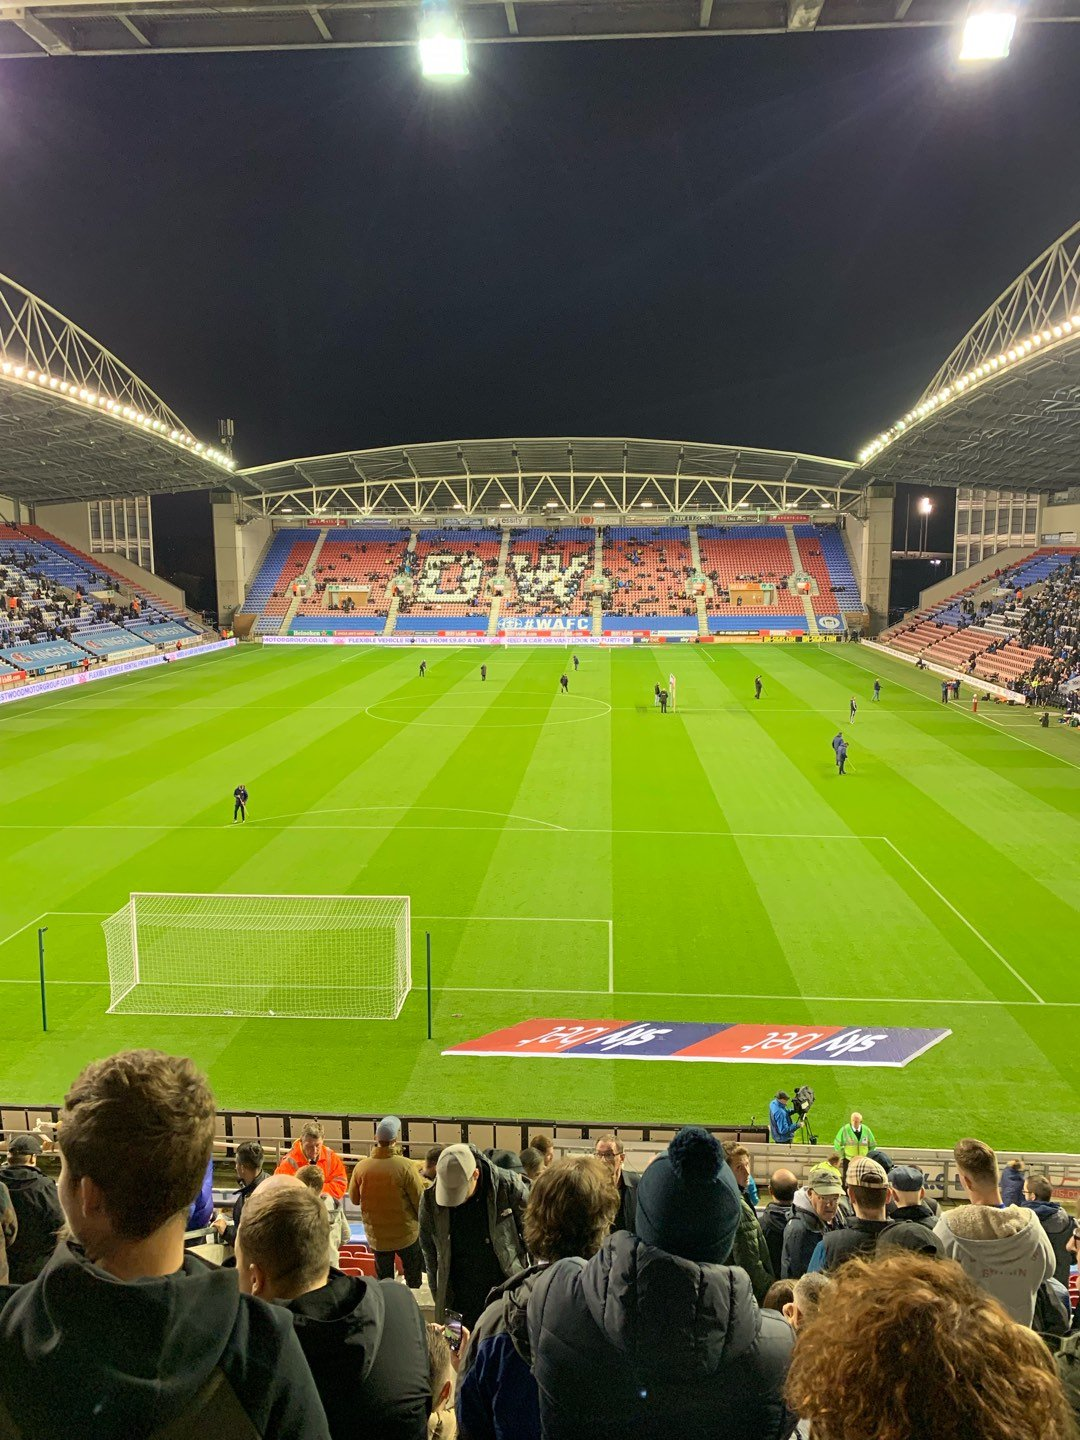 DW Stadium Row AA Seat 72